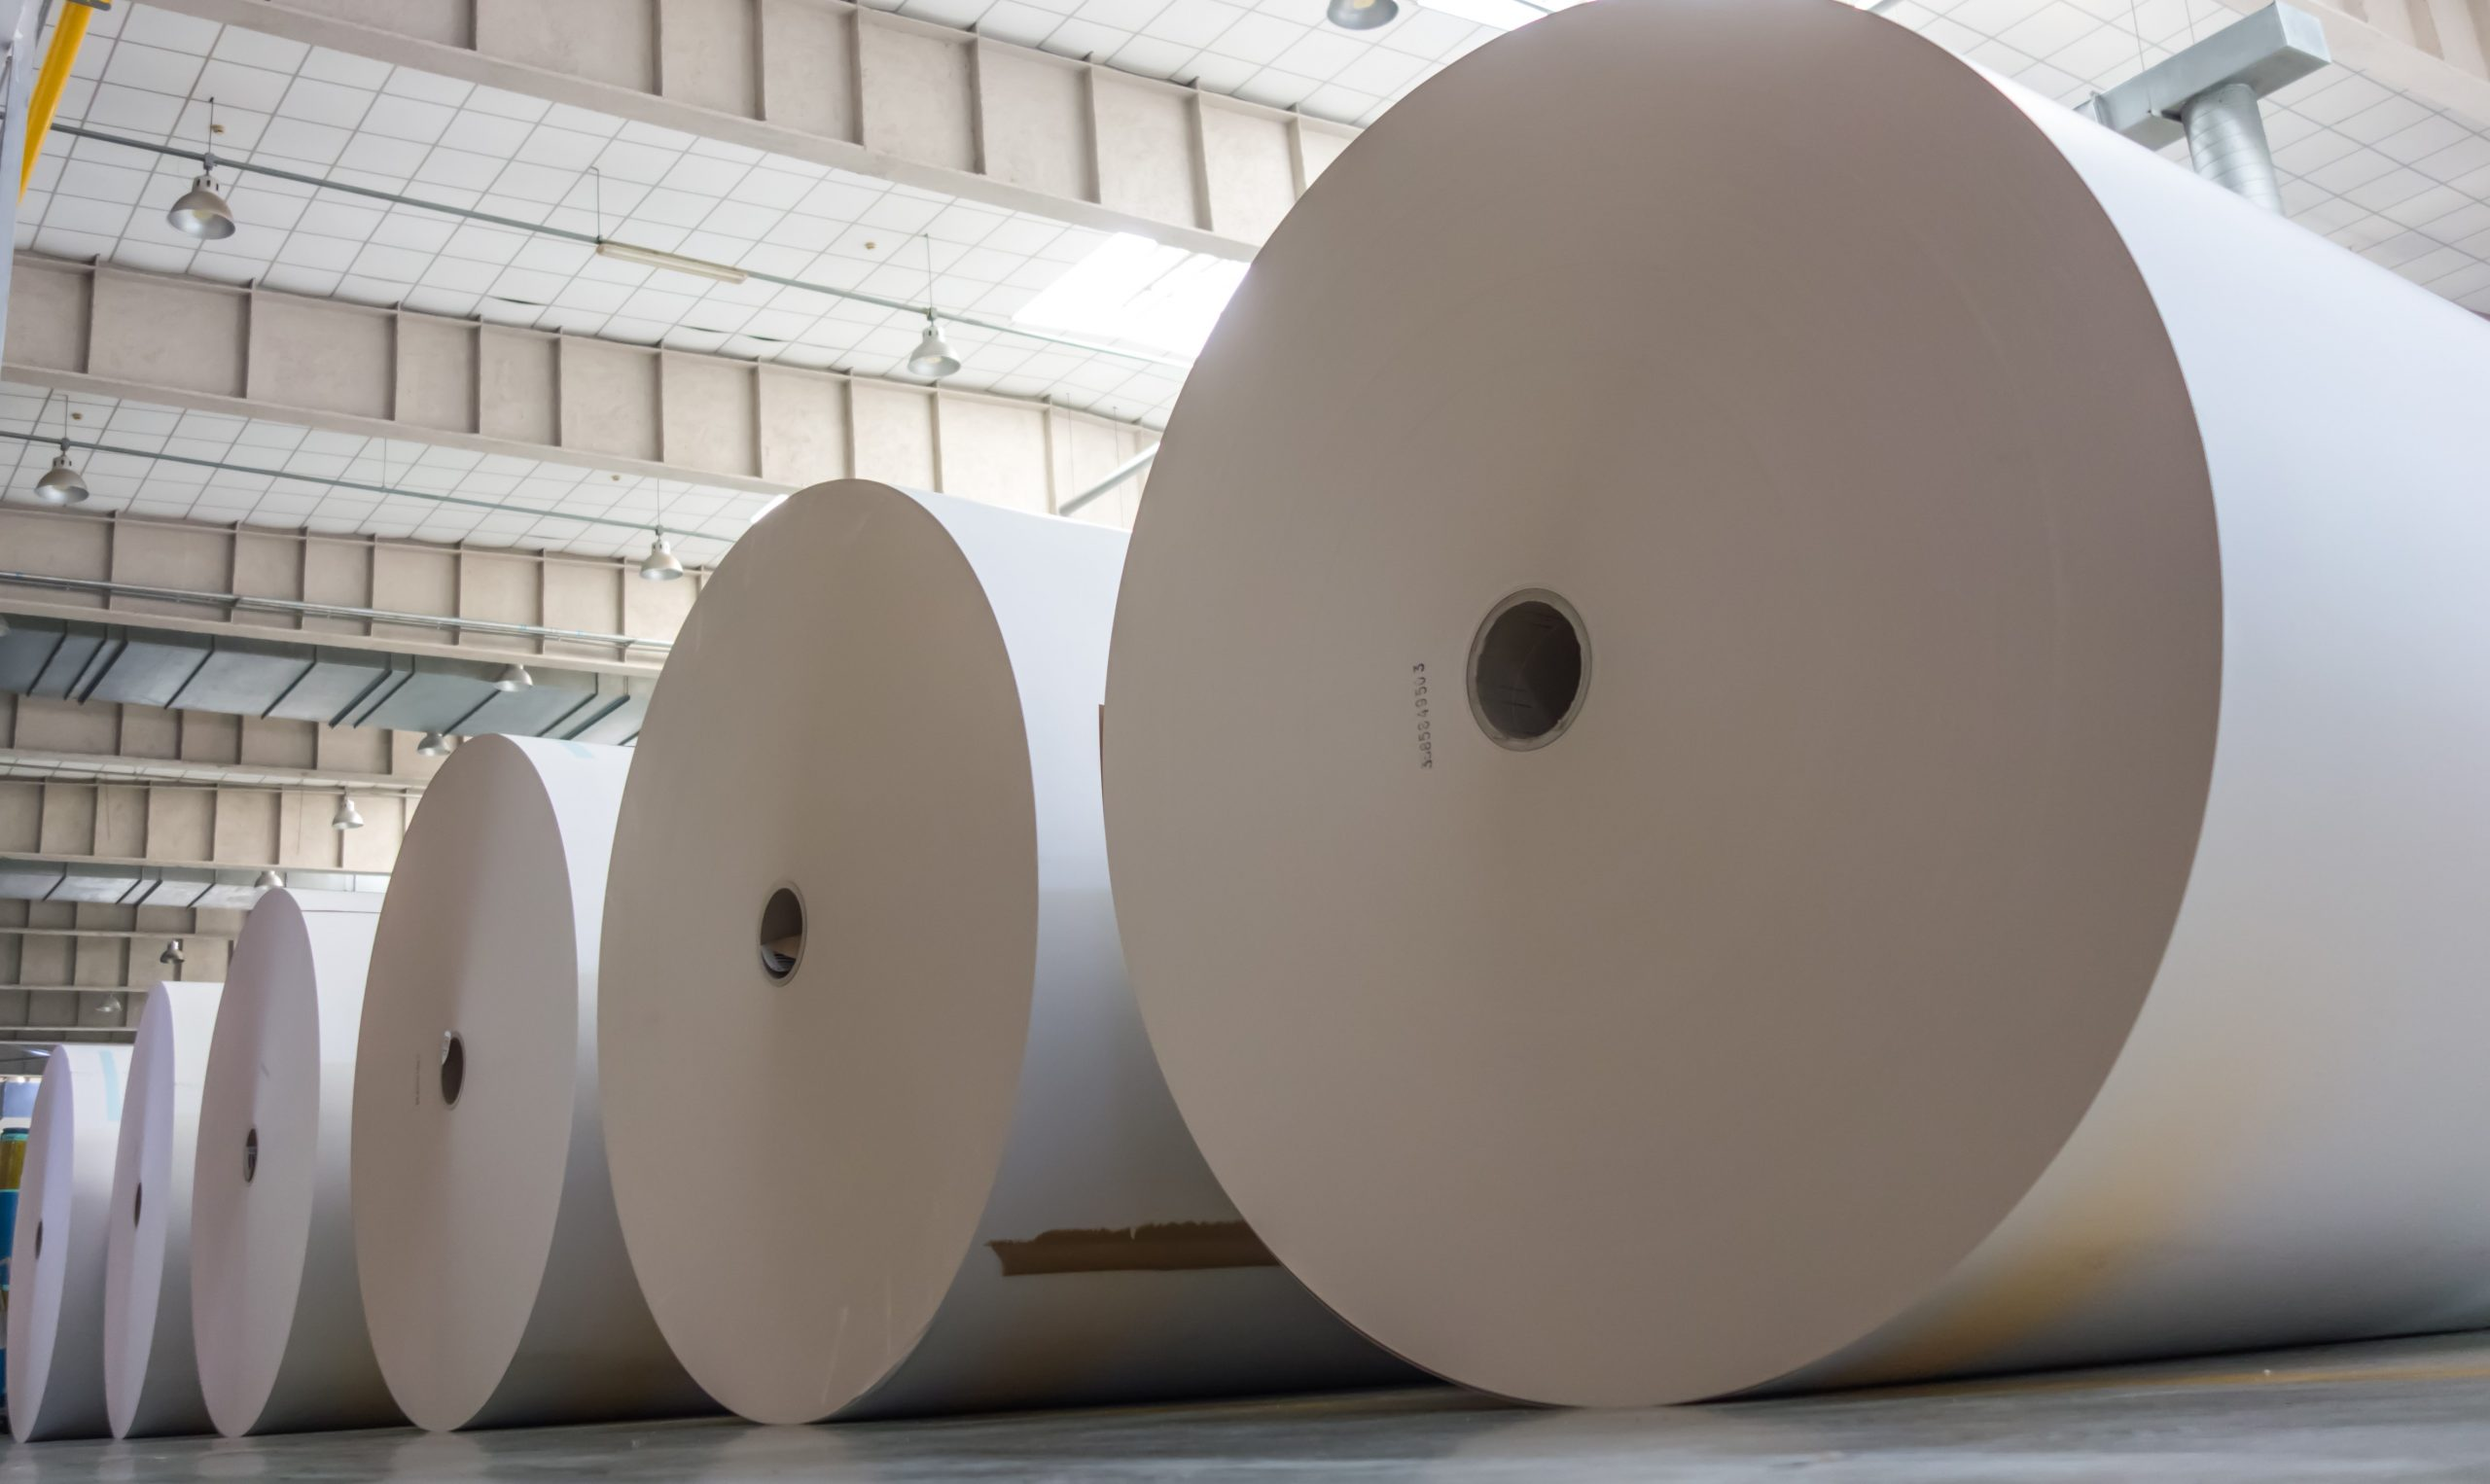 Big,White,Paper,Rolls,Placed,On,The,Floor